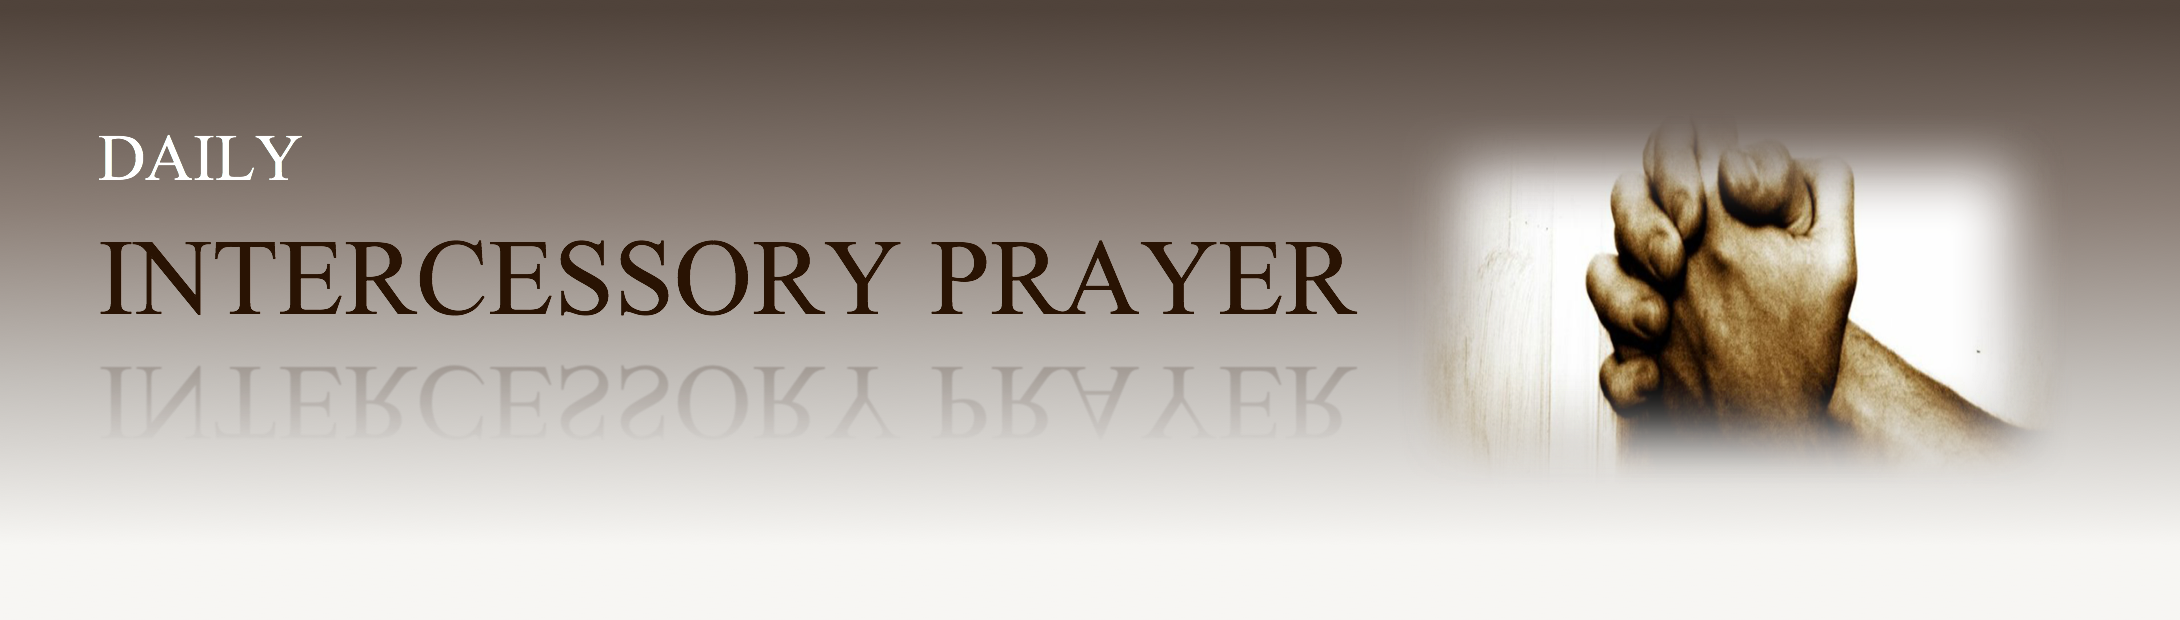 Benefits of intercessory prayer